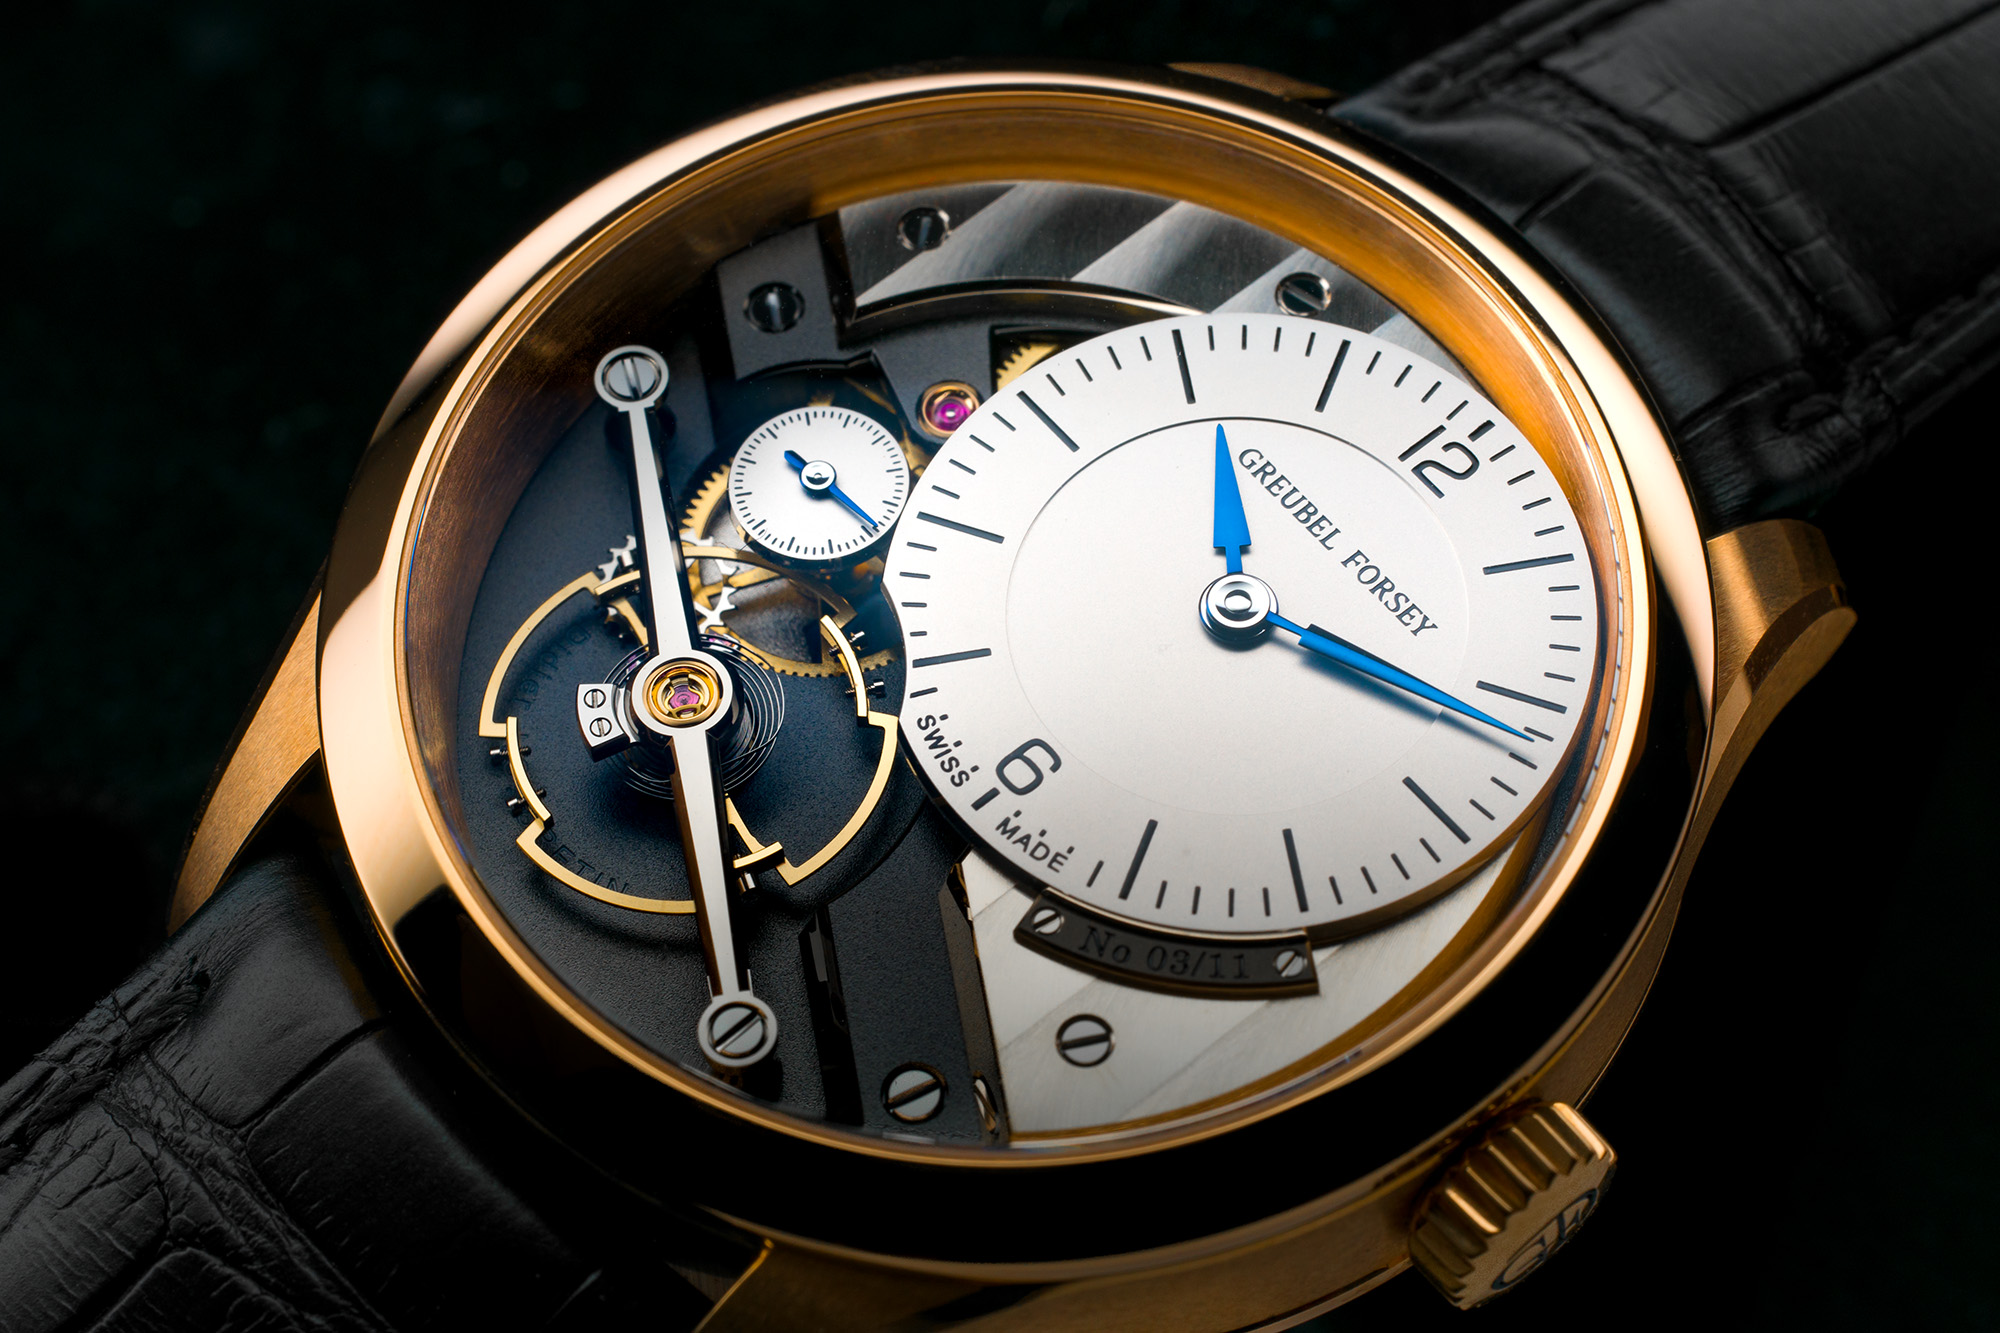 Greubel Forsey Signature 1 timepiece. Shot on the TL2 with TL 60mm macro lens